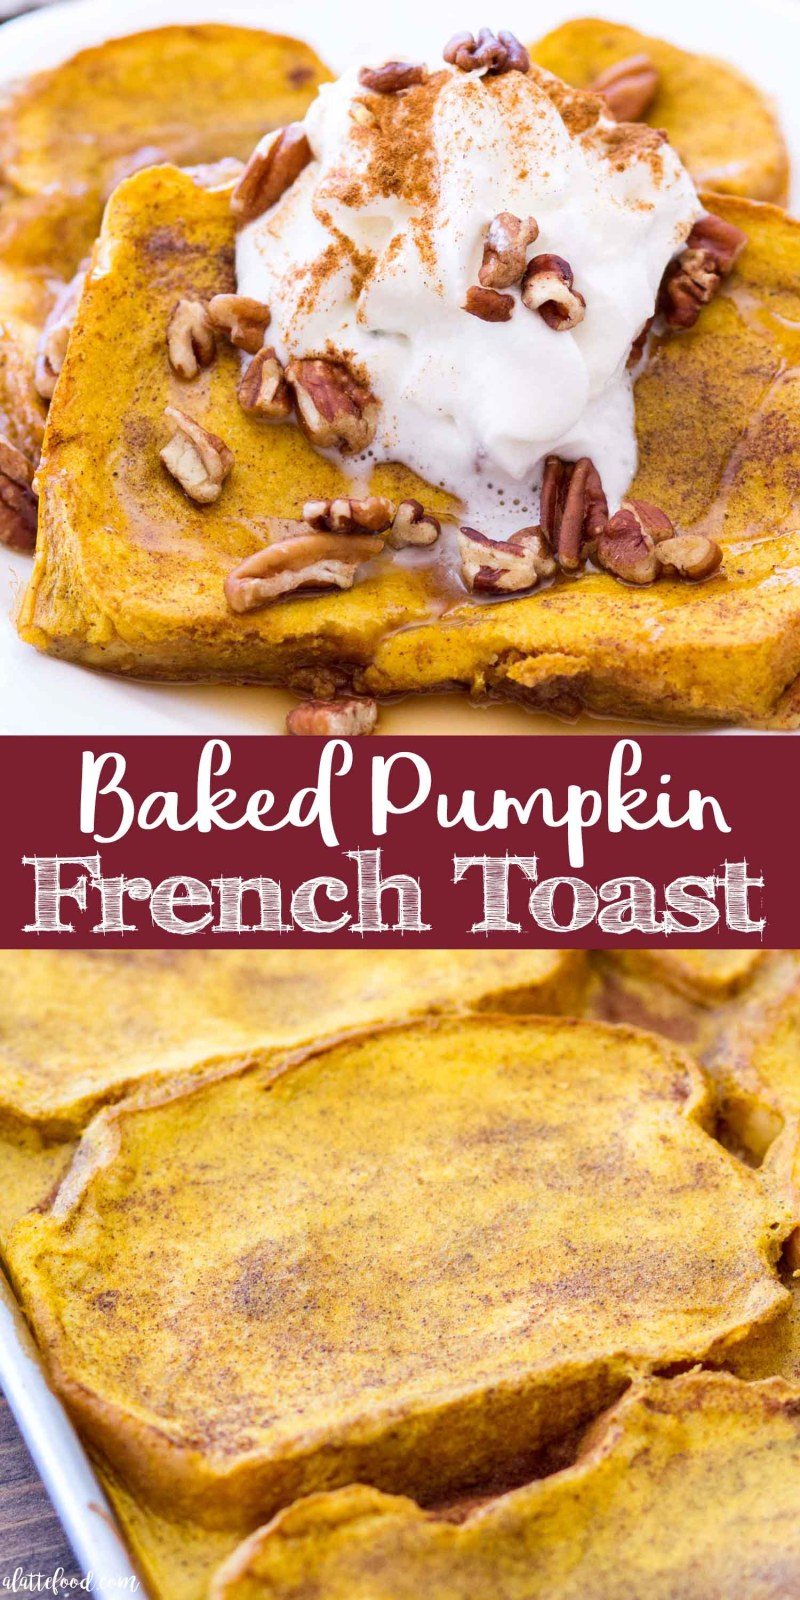 This Easy Pumpkin French Toast Recipe is baked in the oven, making this the perfect fall breakfast! This Baked Pumpkin French Toast Recipe uses thick-cut bread, and is soaked in a rich pumpkin custard and baked to perfection! #fall #pumpkin #dessert #recipe #breakfast